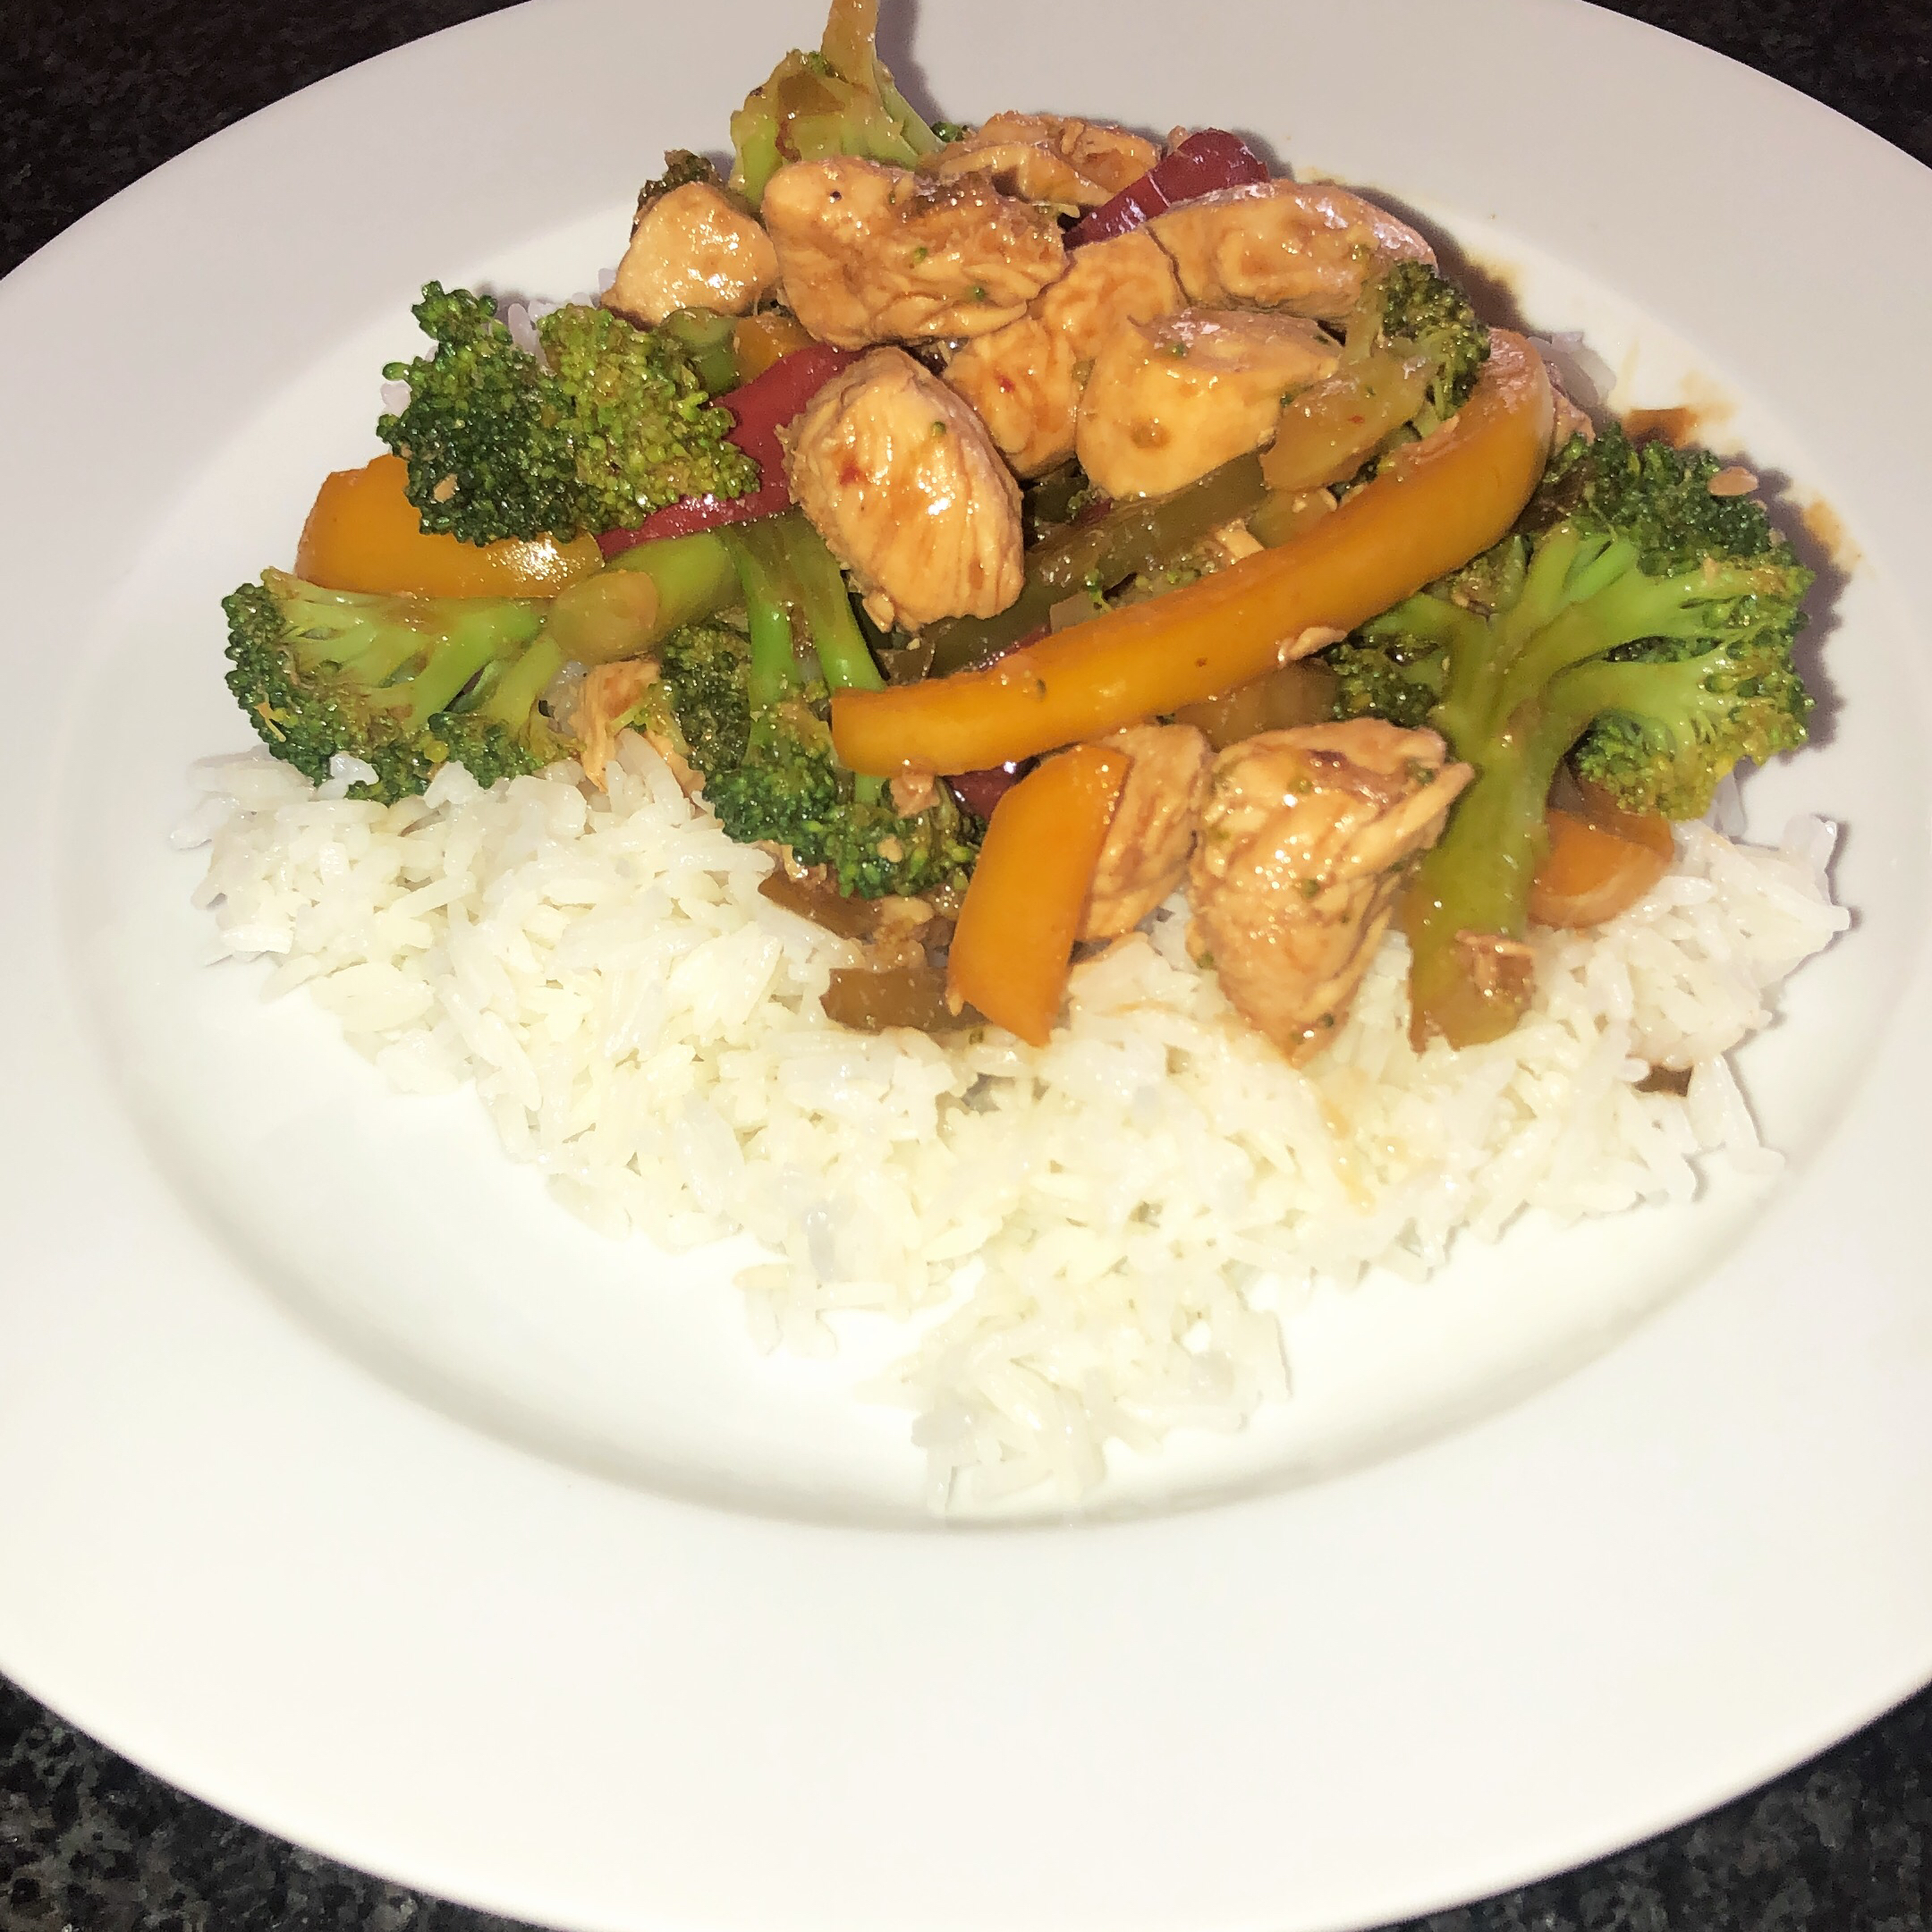 Sweet and Spicy Stir Fry with Chicken and Broccoli kimberly blumgart